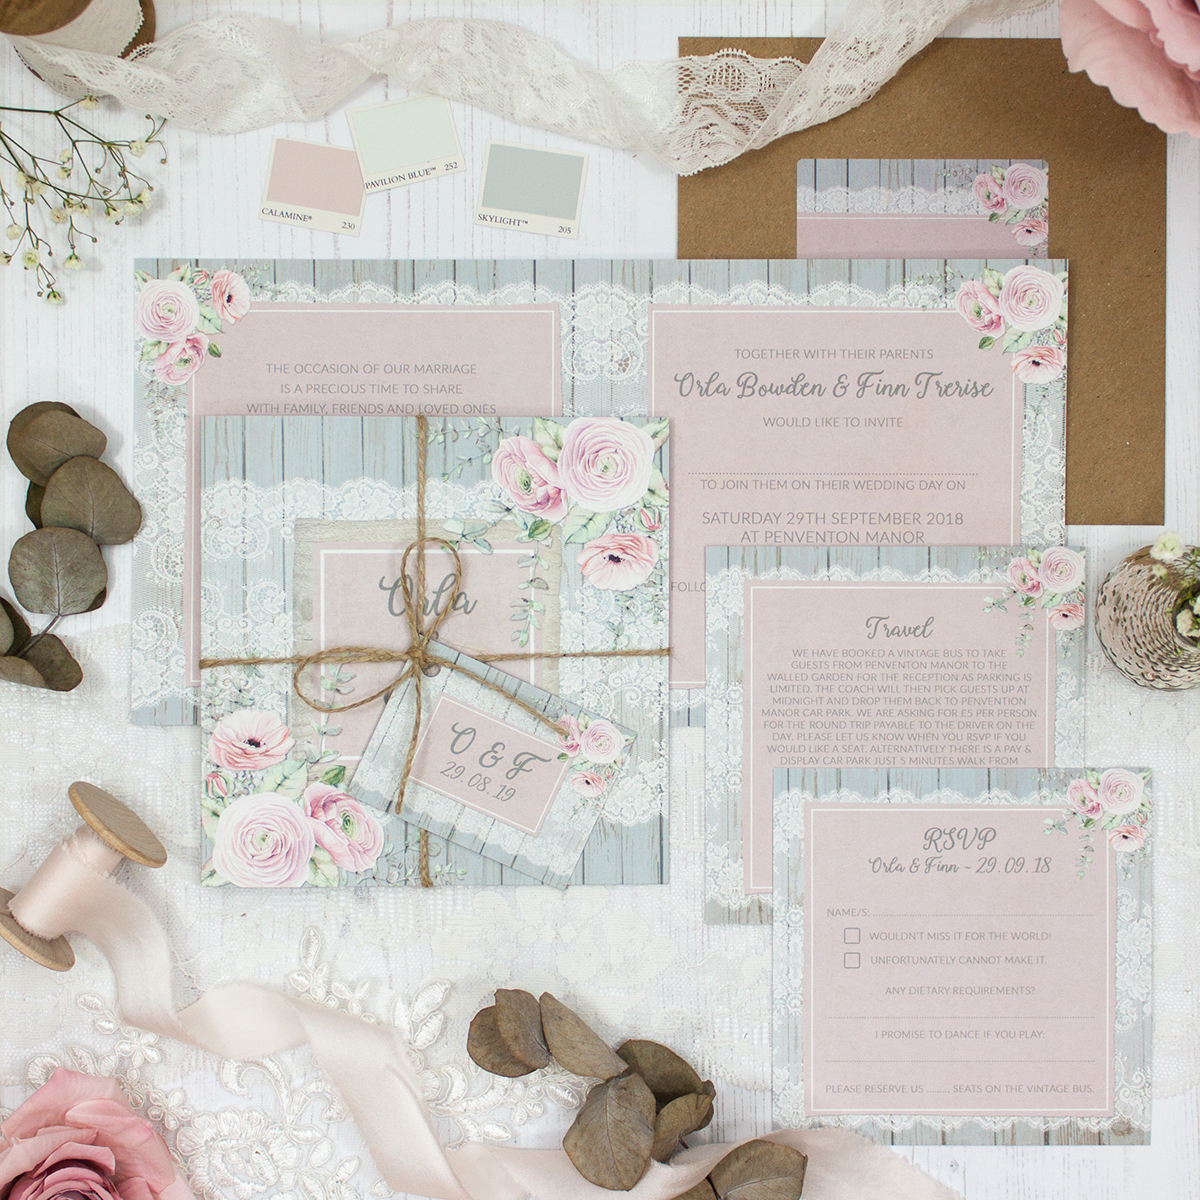 Dusty Flourish Wedding showing invitation